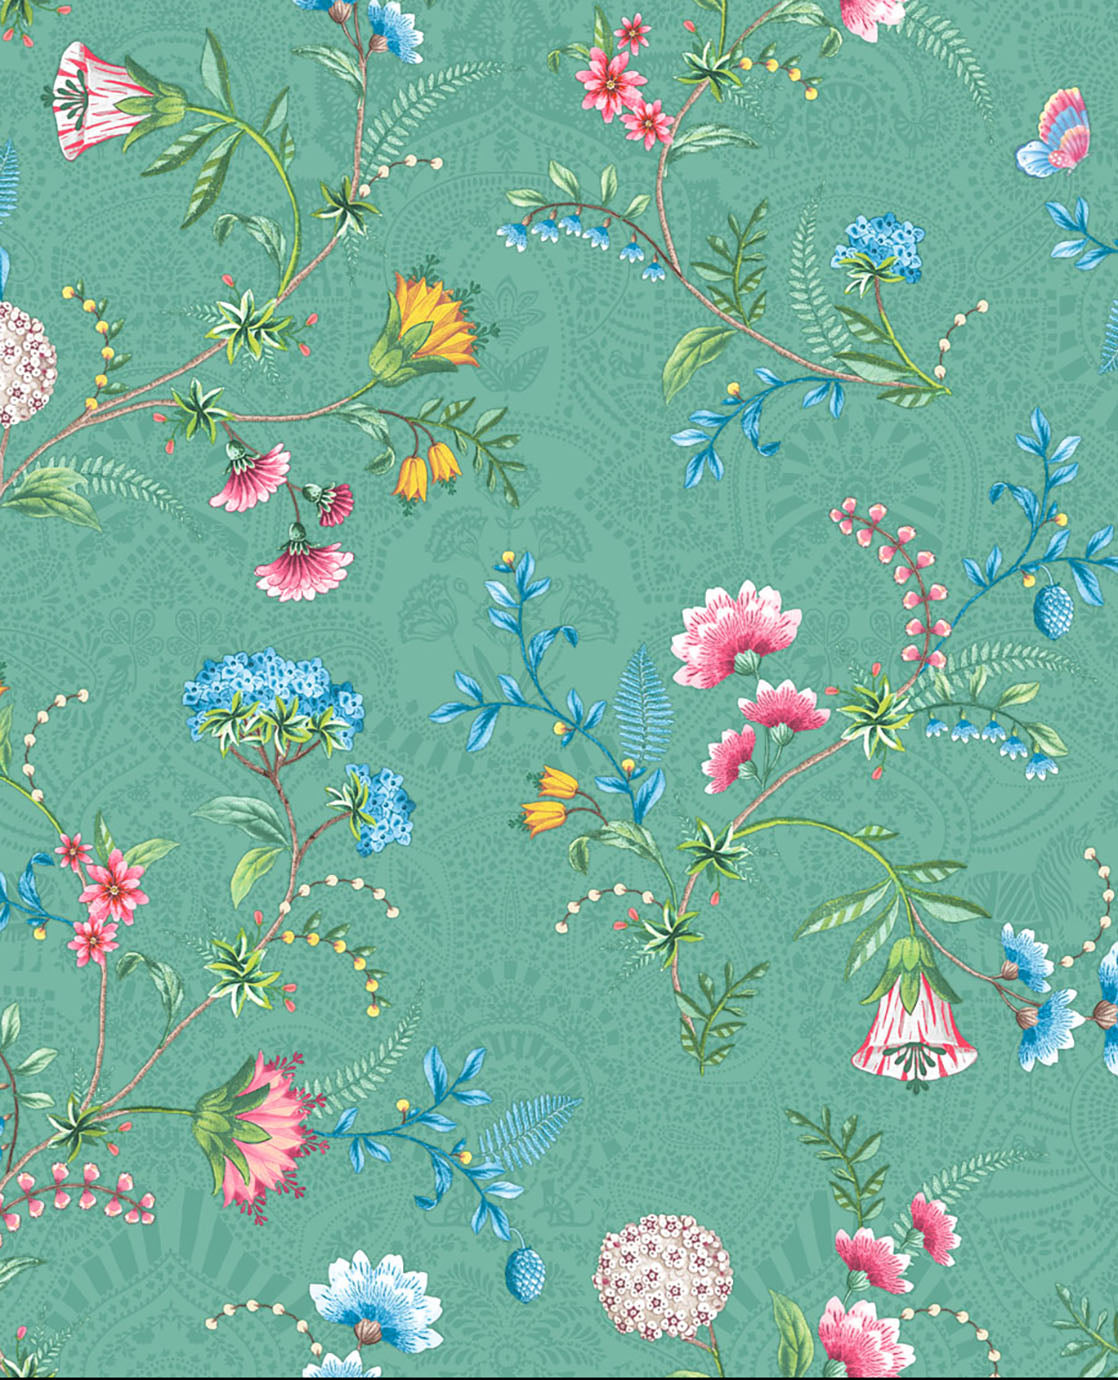 Pip Studio No 120 Wallpaper, Green / Multi Color